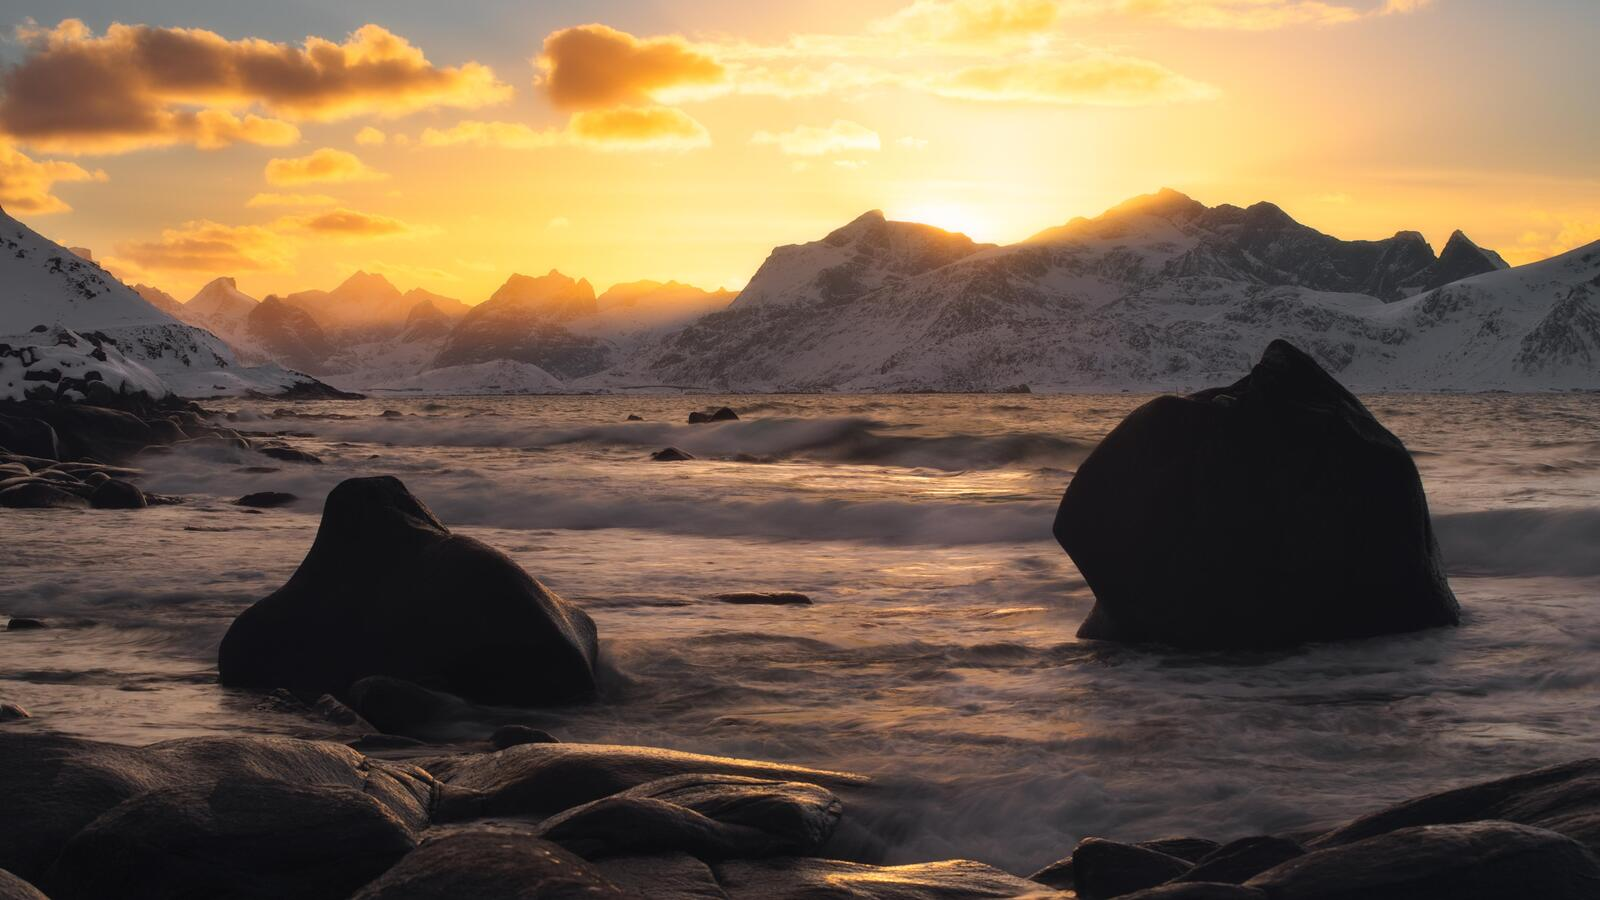 colourful-sunset-in-northern-norway-5k-68.jpg